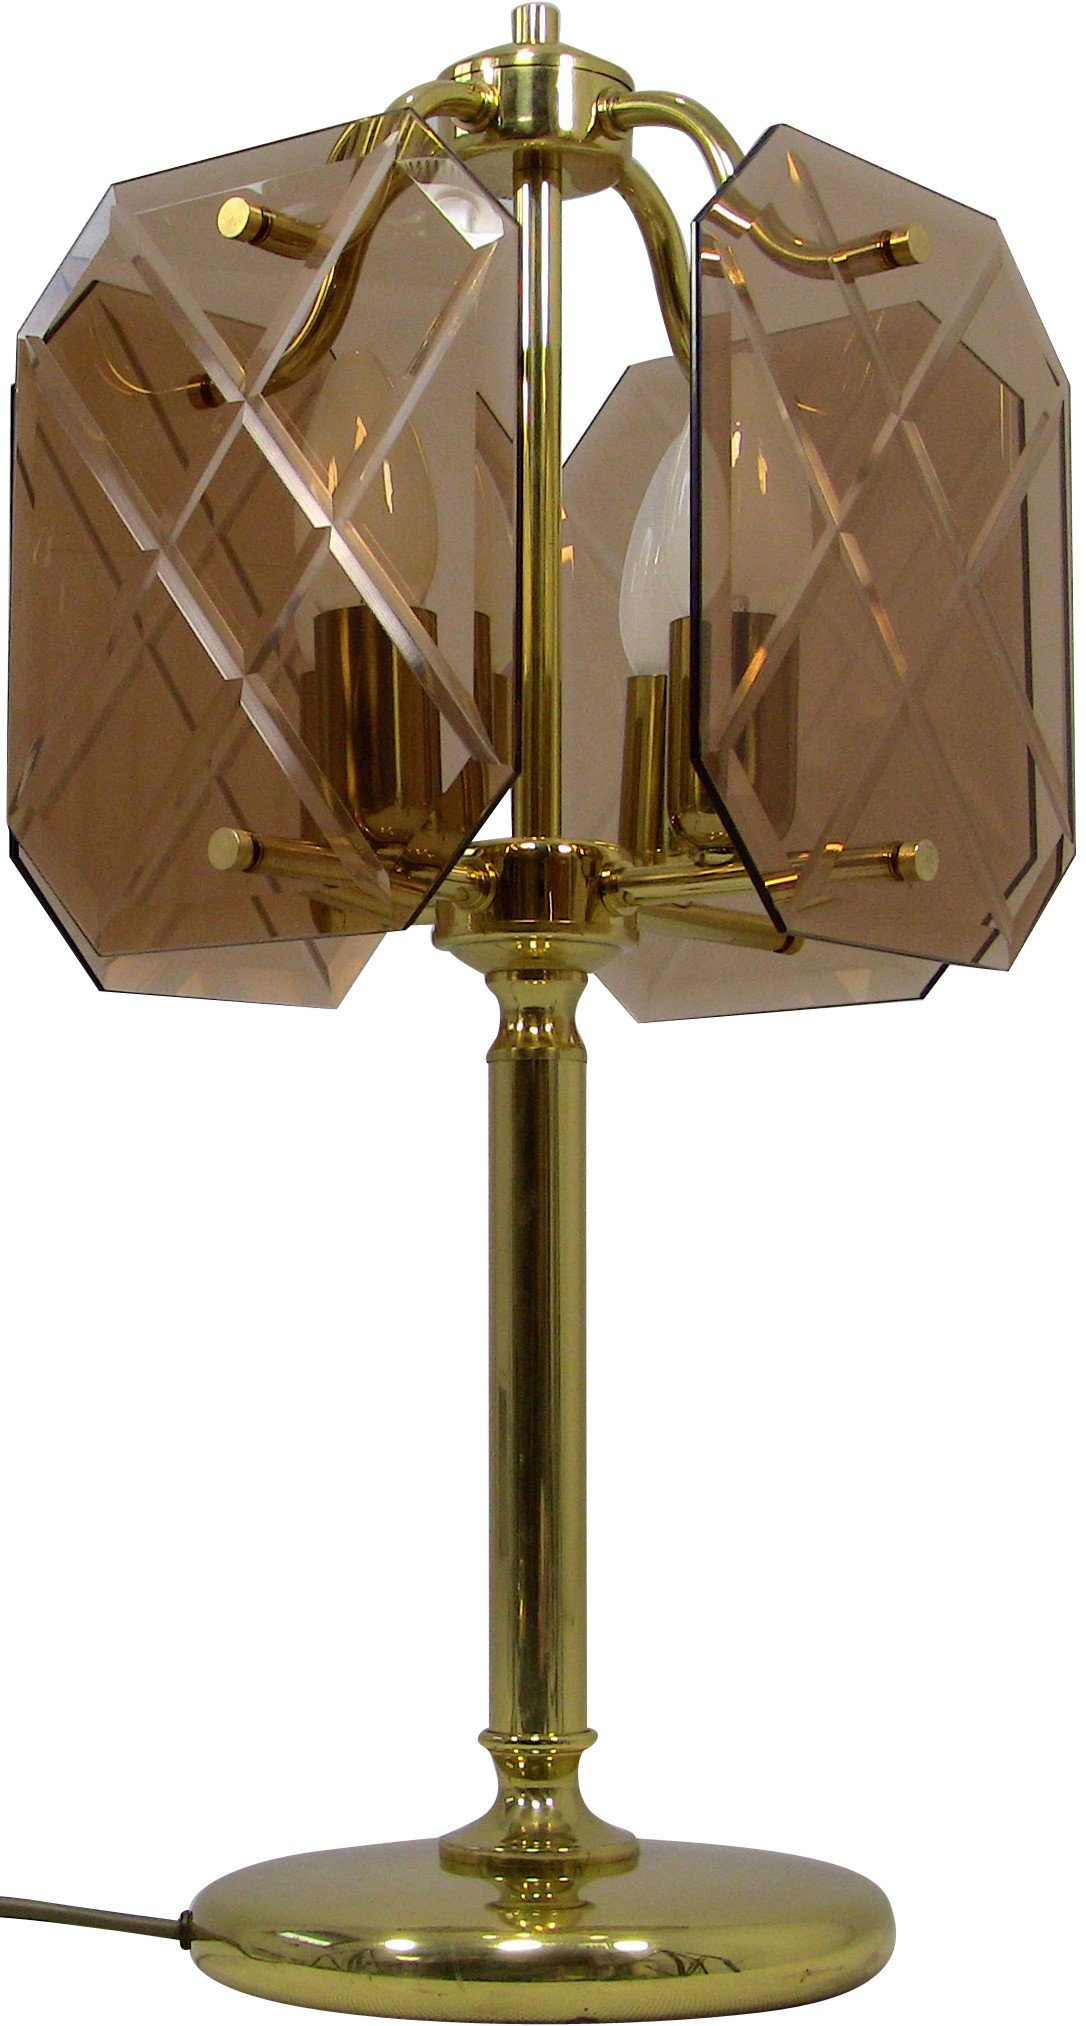 Table Lamp, Solken Leuchten, Germany, 1970s